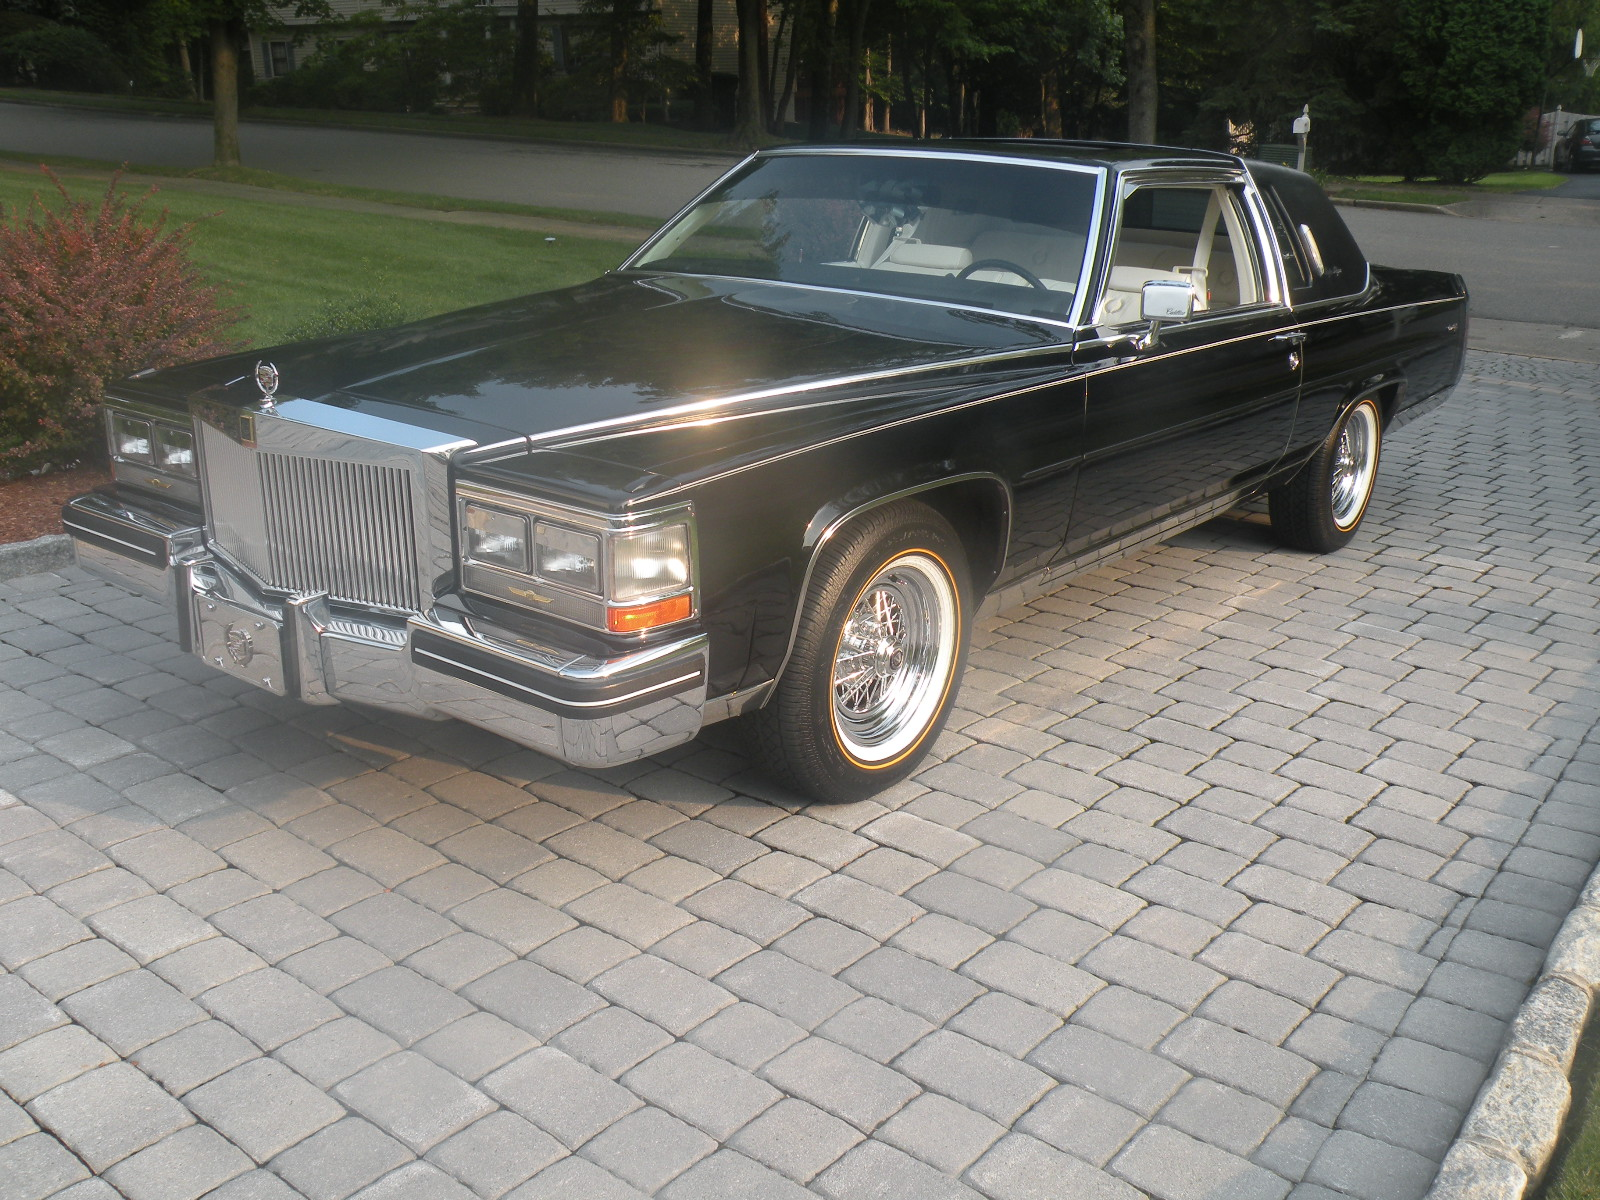 Rich Prager's 1984 Cadillac Fleetwood Brougham d'Elegance Coupe 4K